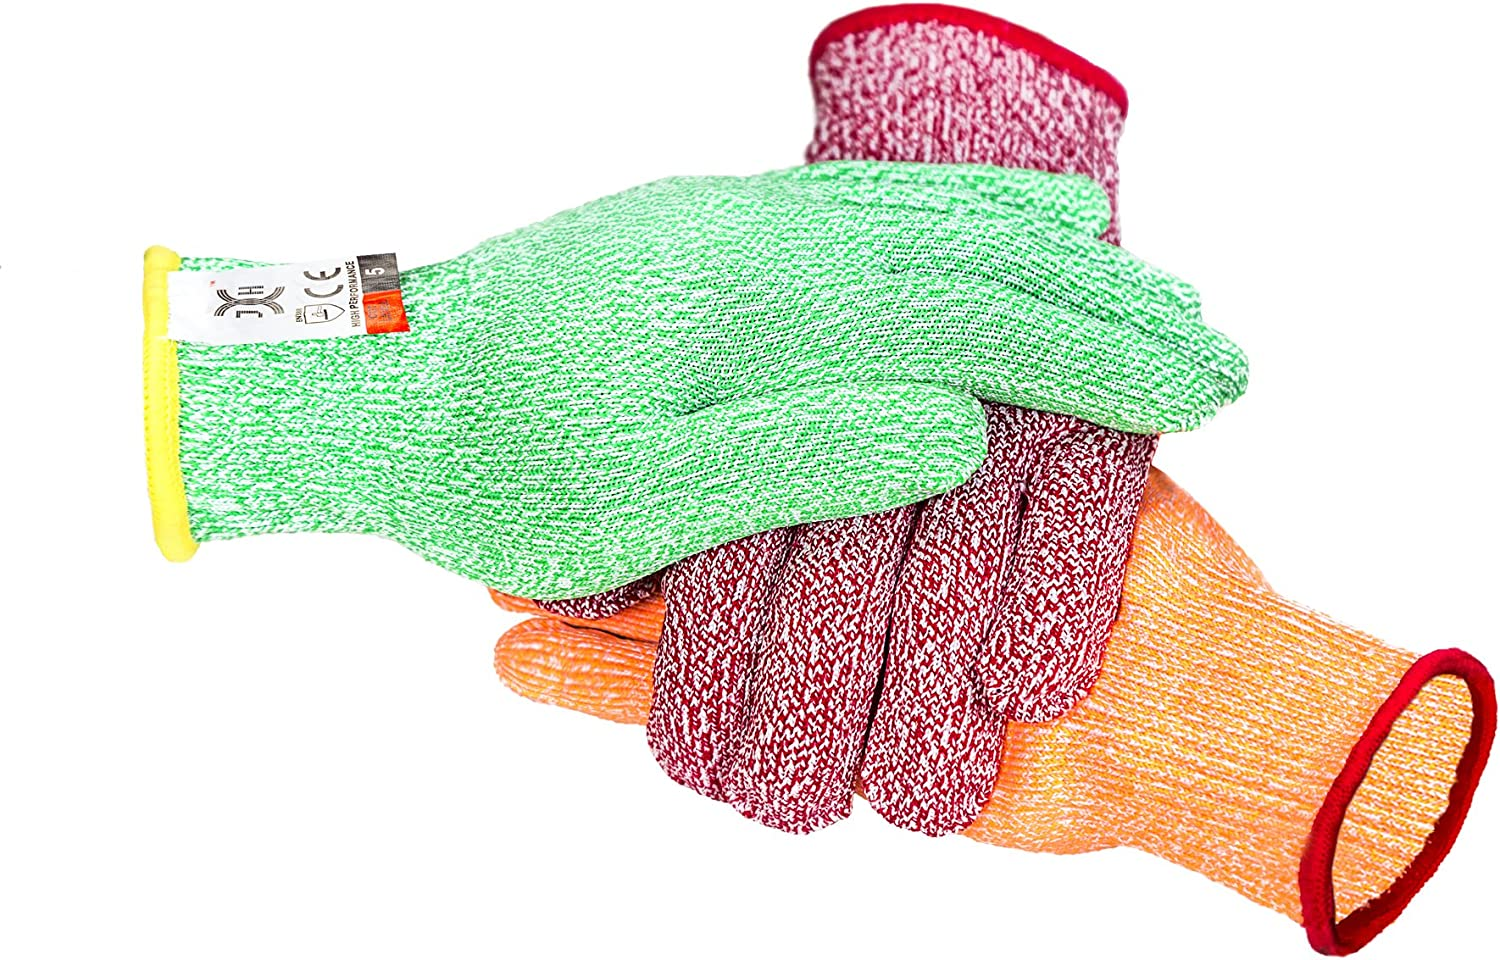 C0224L3 3 Color Cut Resistant Gloves Red For Meat, Green For Veg, Yellow For Fruit- High Performance Cut Level 5, Food Grade No Cross Contam, 3Piece Large